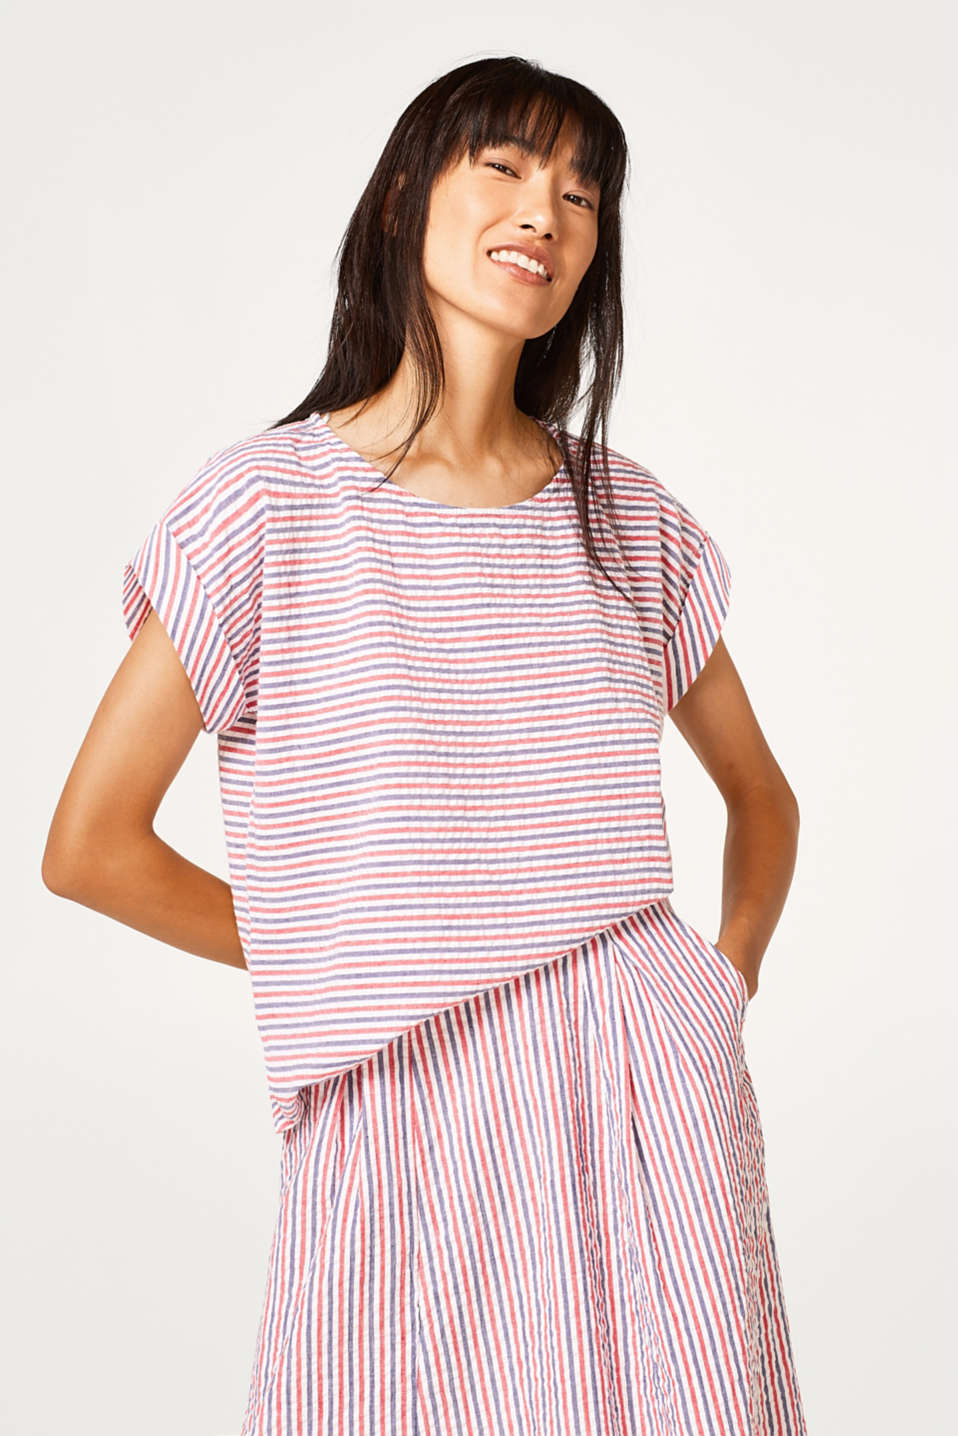 Esprit - Seersucker blouse in a nautical look, 100% cotton